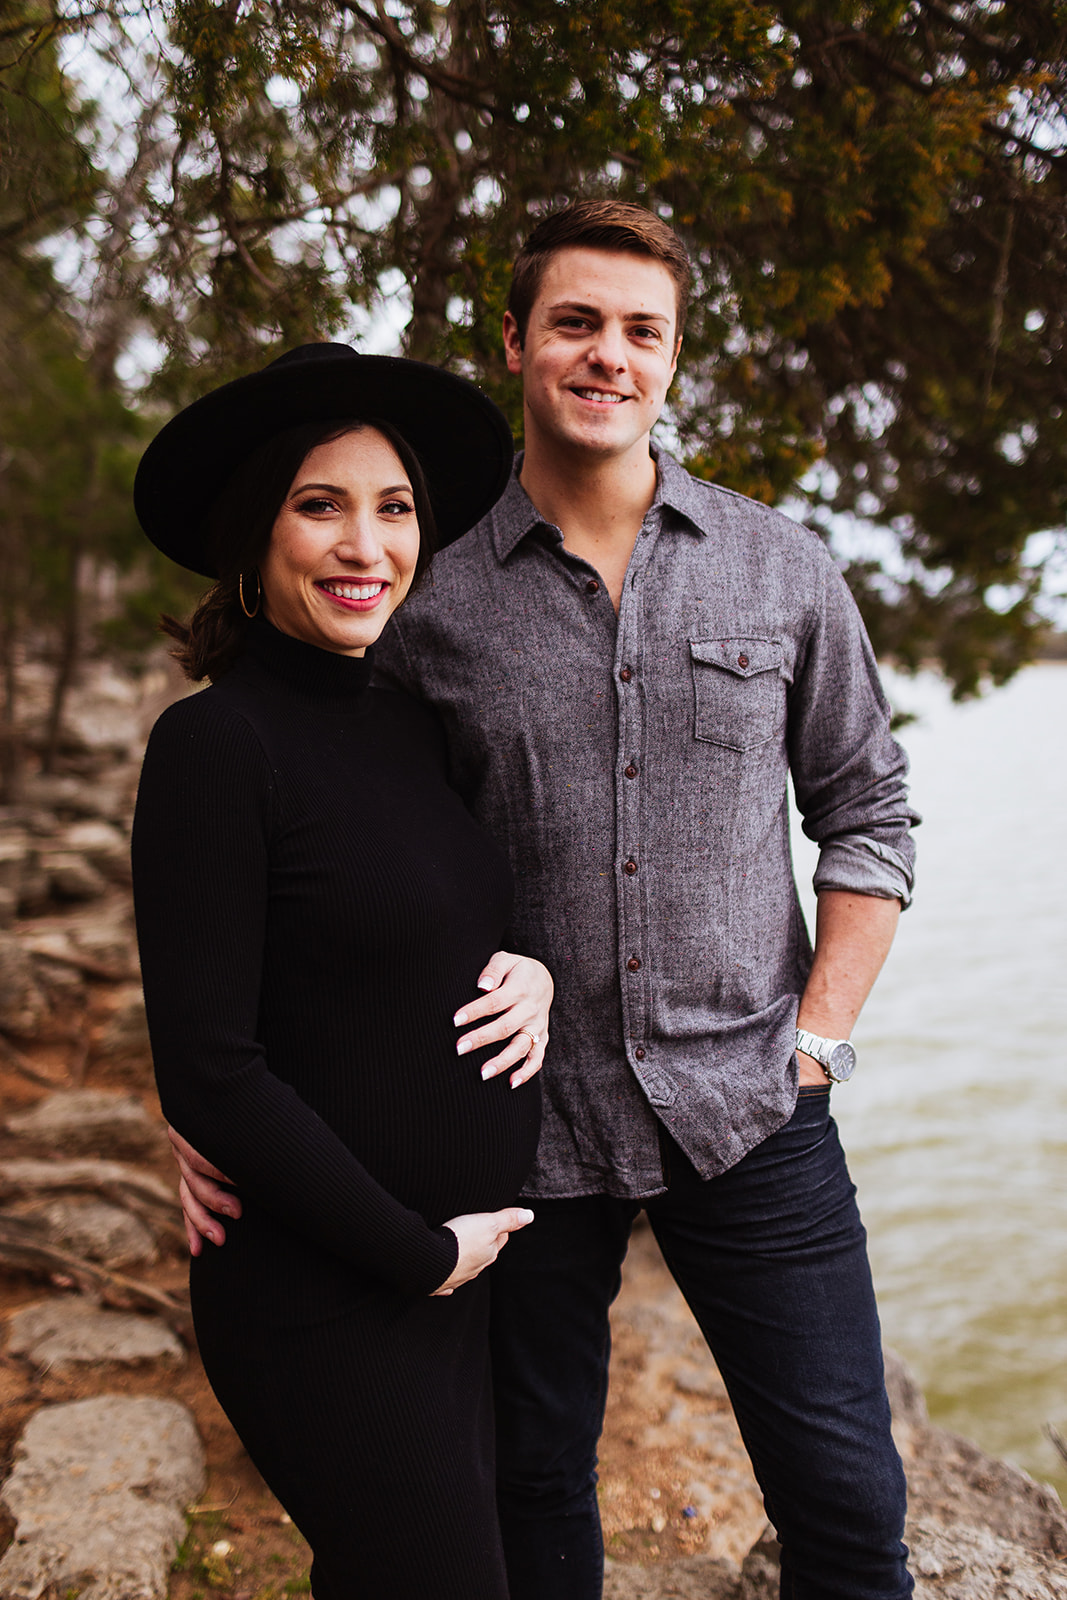 Shoreline Maternity Session from Emily Green Creative featured on Nashville Baby Guide